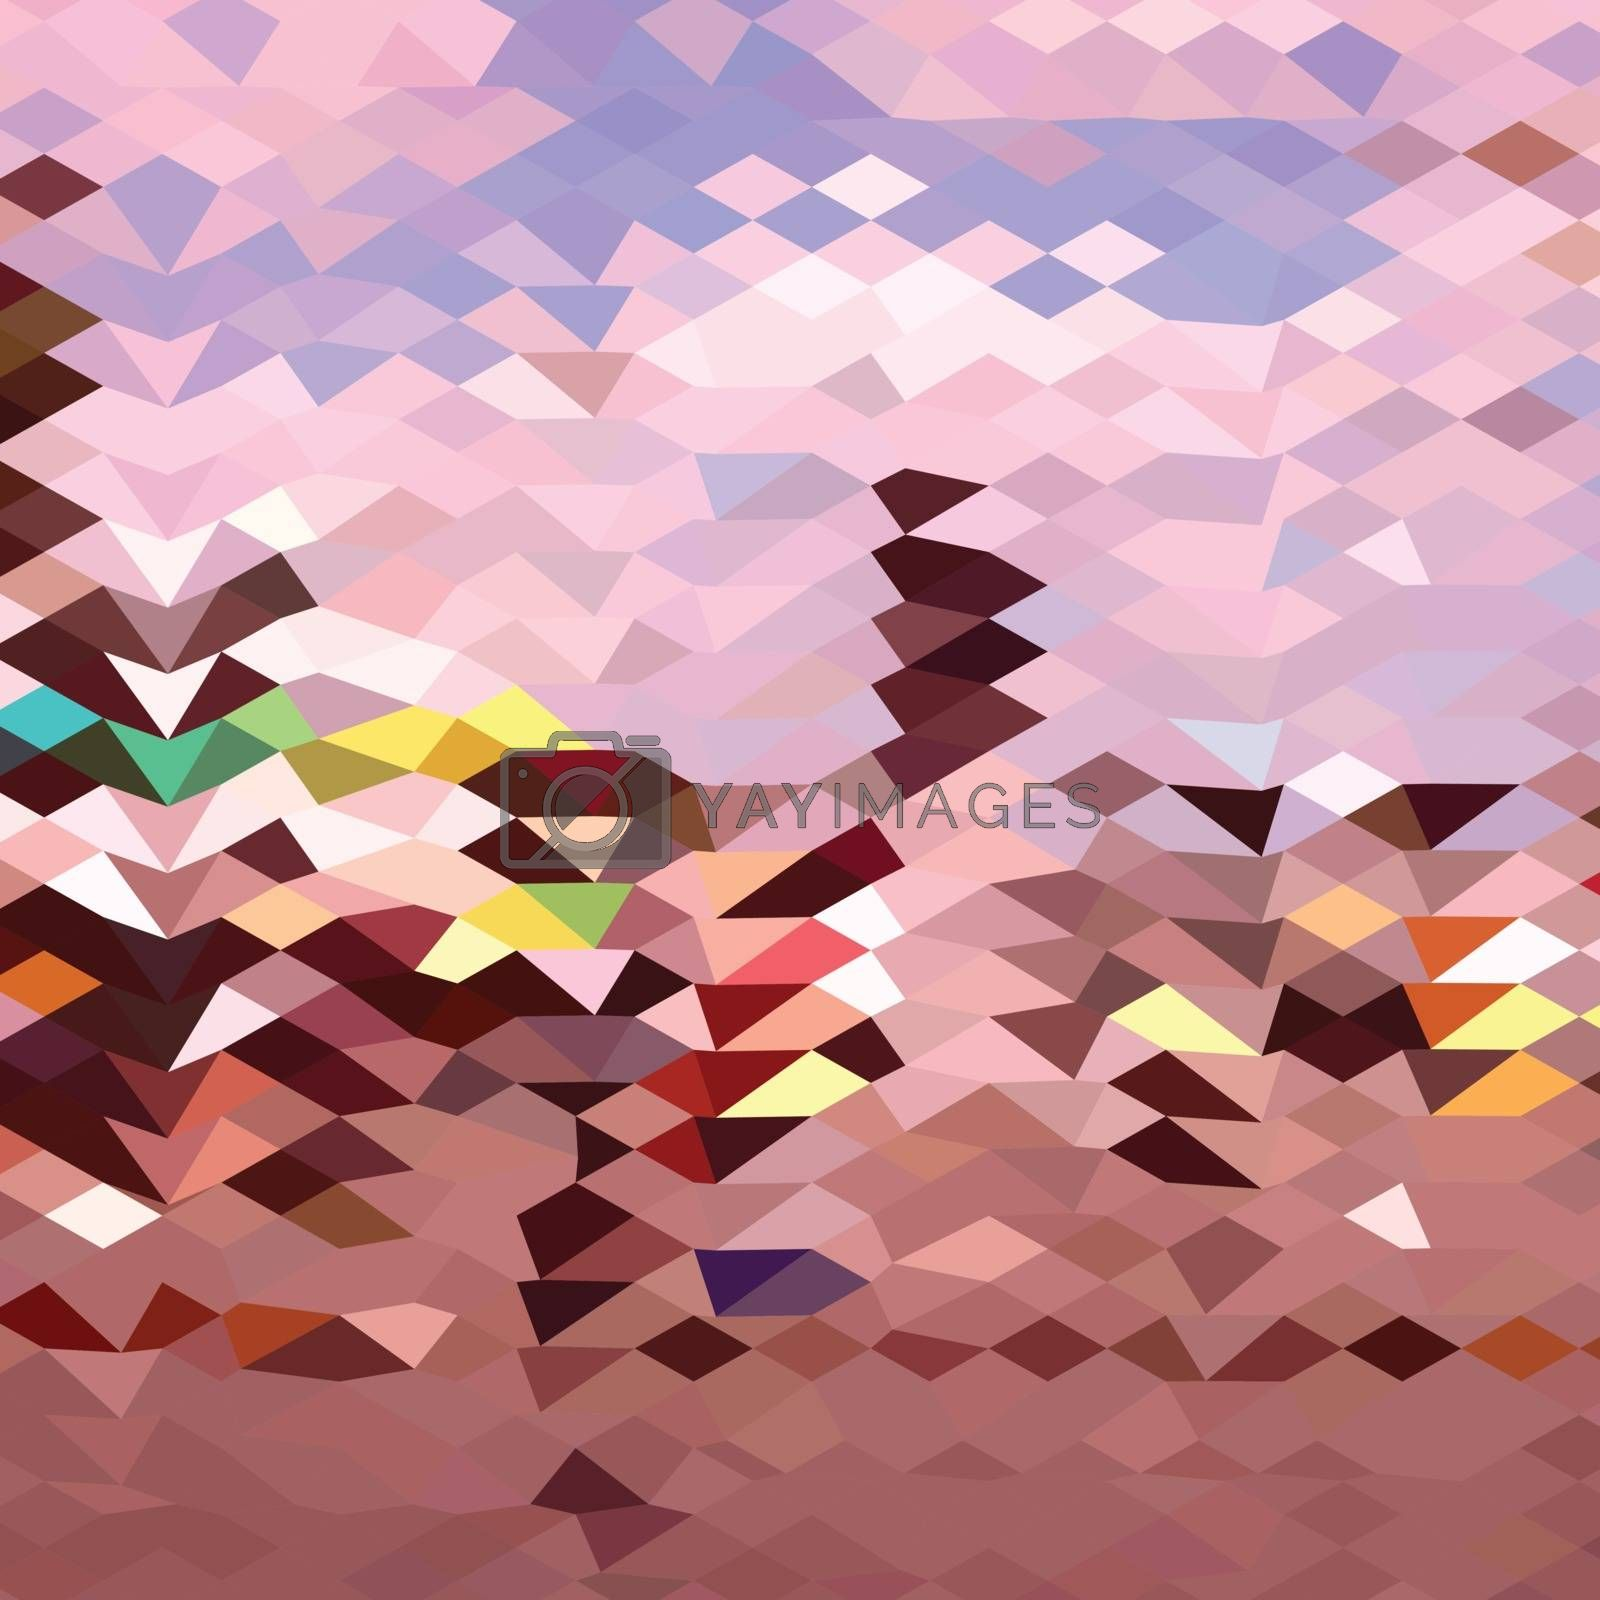 Low polygon style illustration of a horseman abstract background.